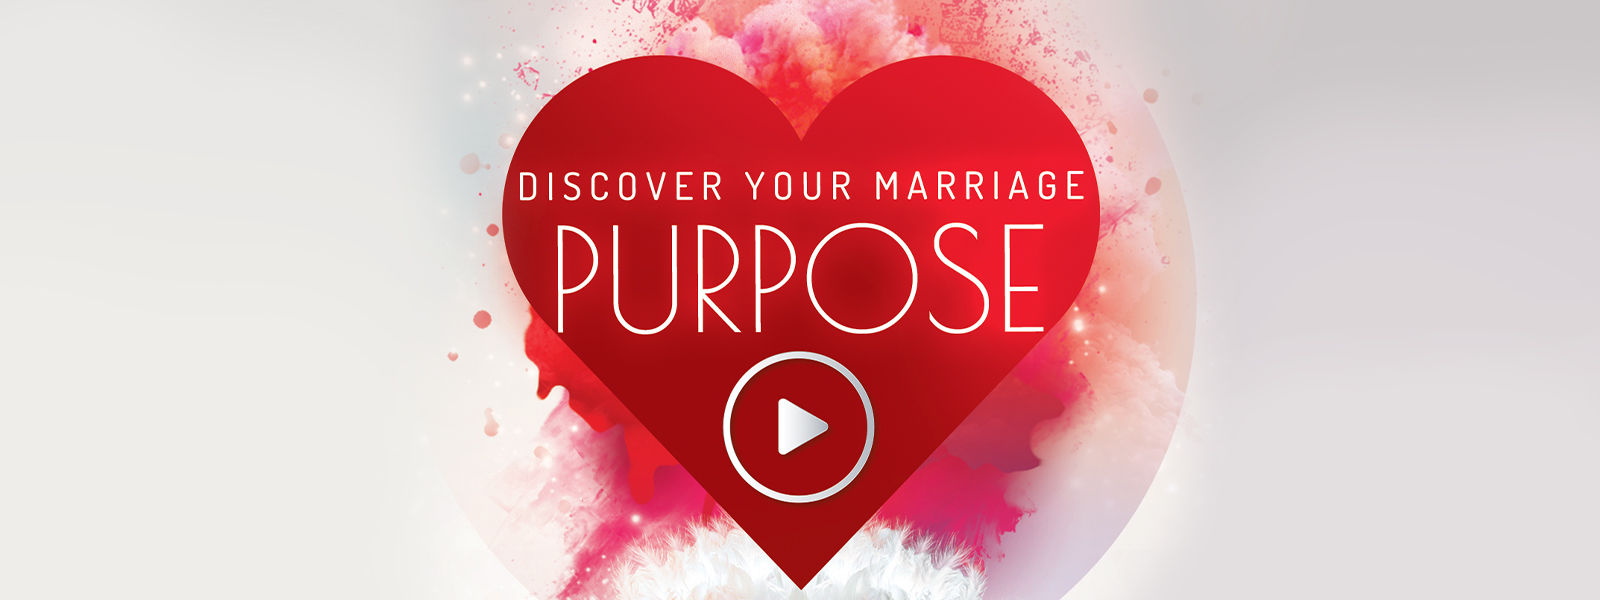 Discover Your Marriage Purpose!